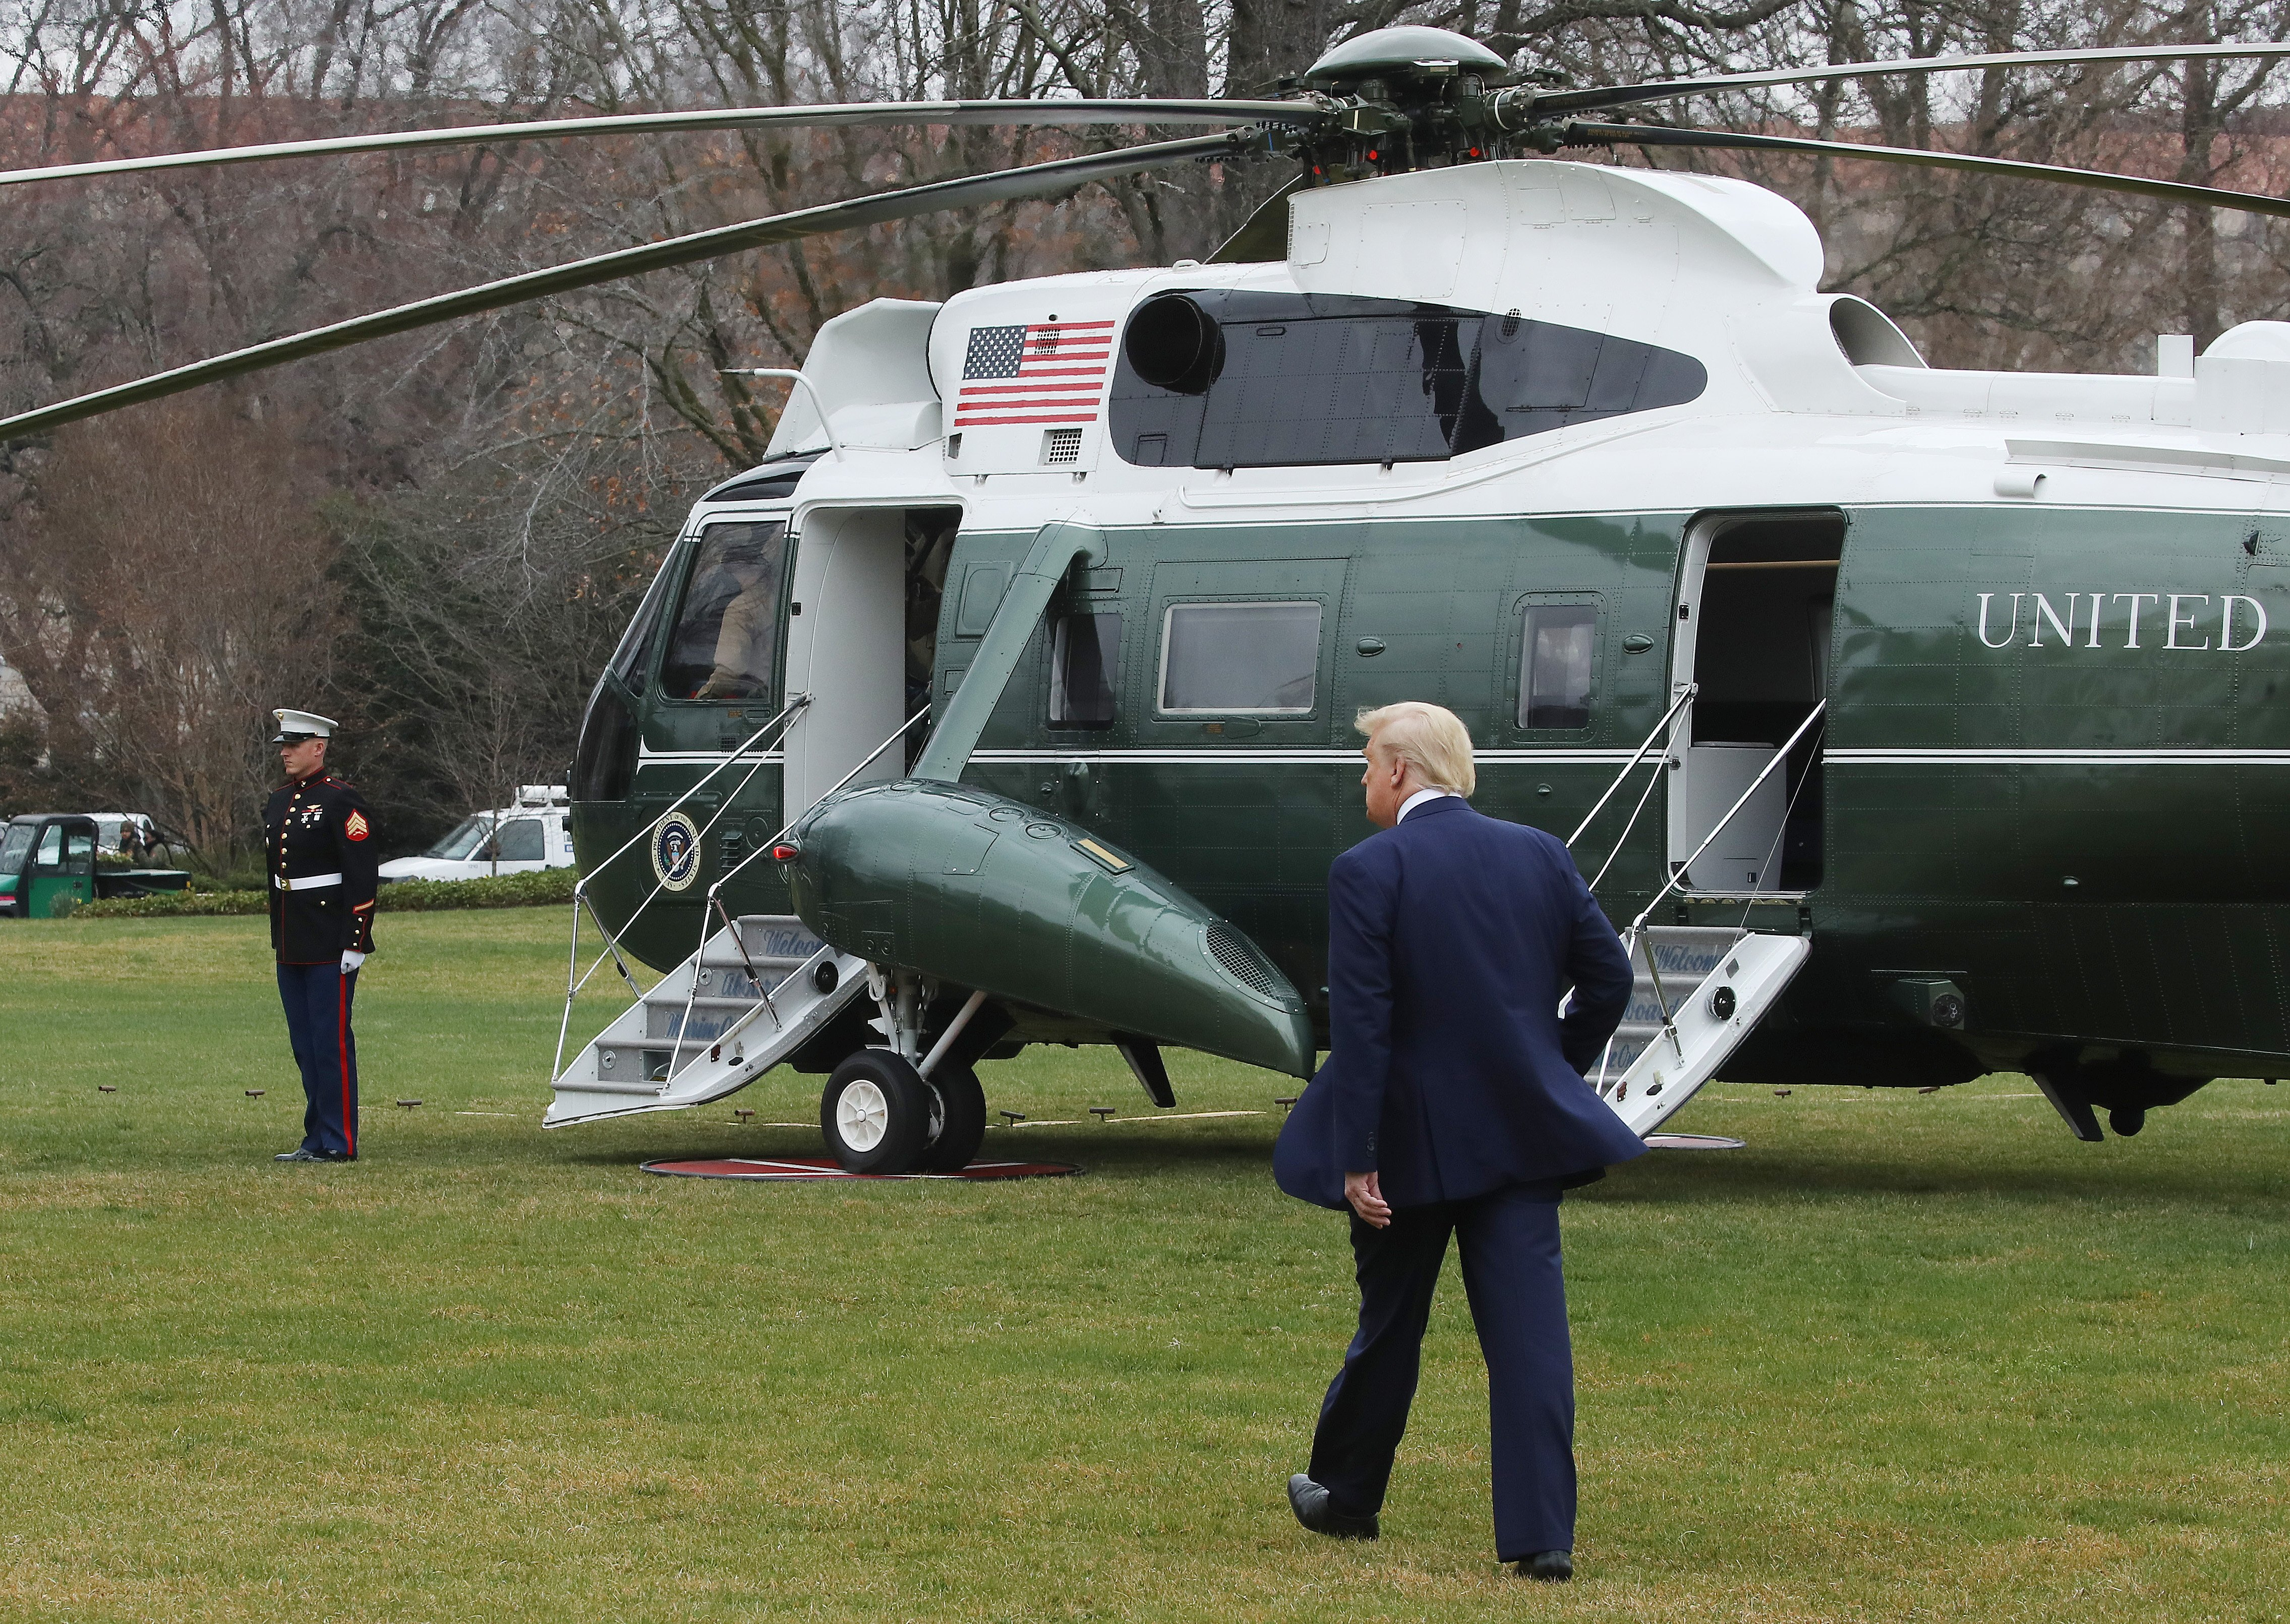 WASHINGTON, DC - MARCH 03: U.S. President Donald Trump walks toward Marine One while departing from the White House, on March 3, 2020 in Washington, DC. President Trump is traveling to visit the vaccine research center at the National Institutes of Health to receive a briefing on the novel coronavirus. (Photo by Mark Wilson/Getty Images)